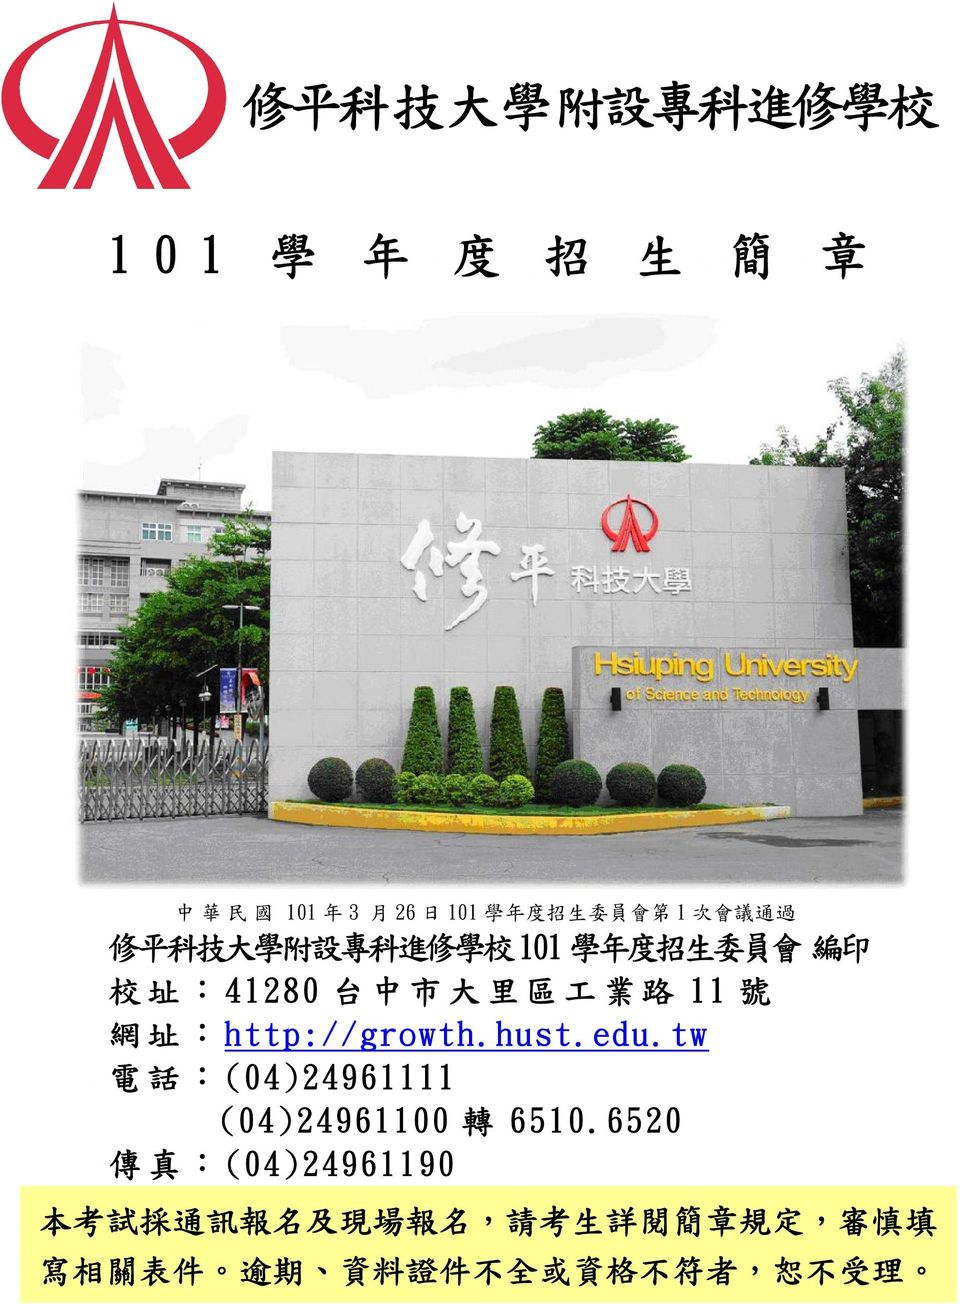 網 址 http://growth.hust.edu.tw 電 話 (04)24961111 (04)24961100 轉 6510.